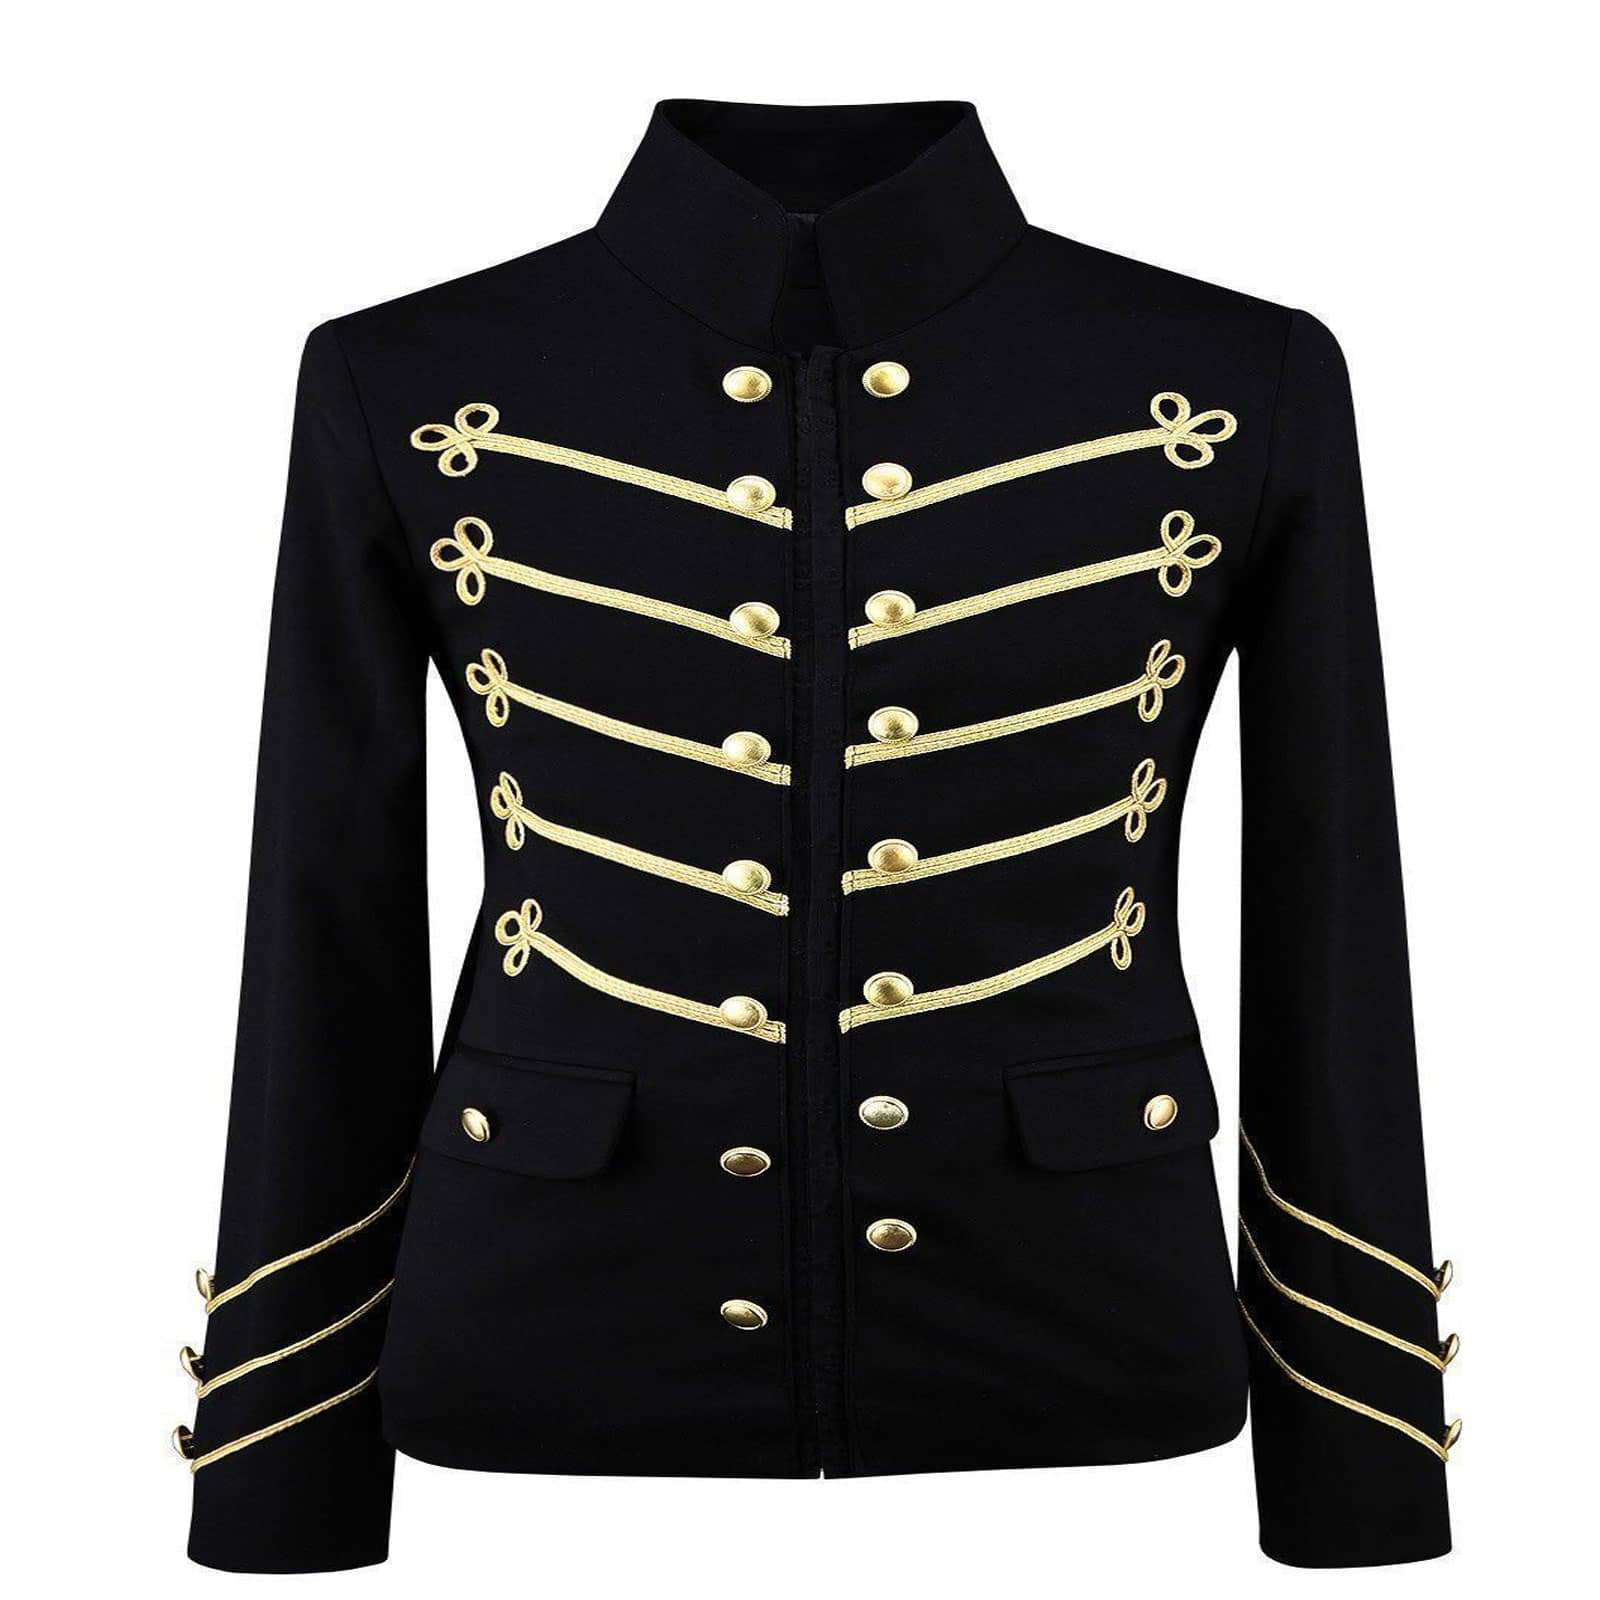 black military jacket with gold embroidery made to measure kilt